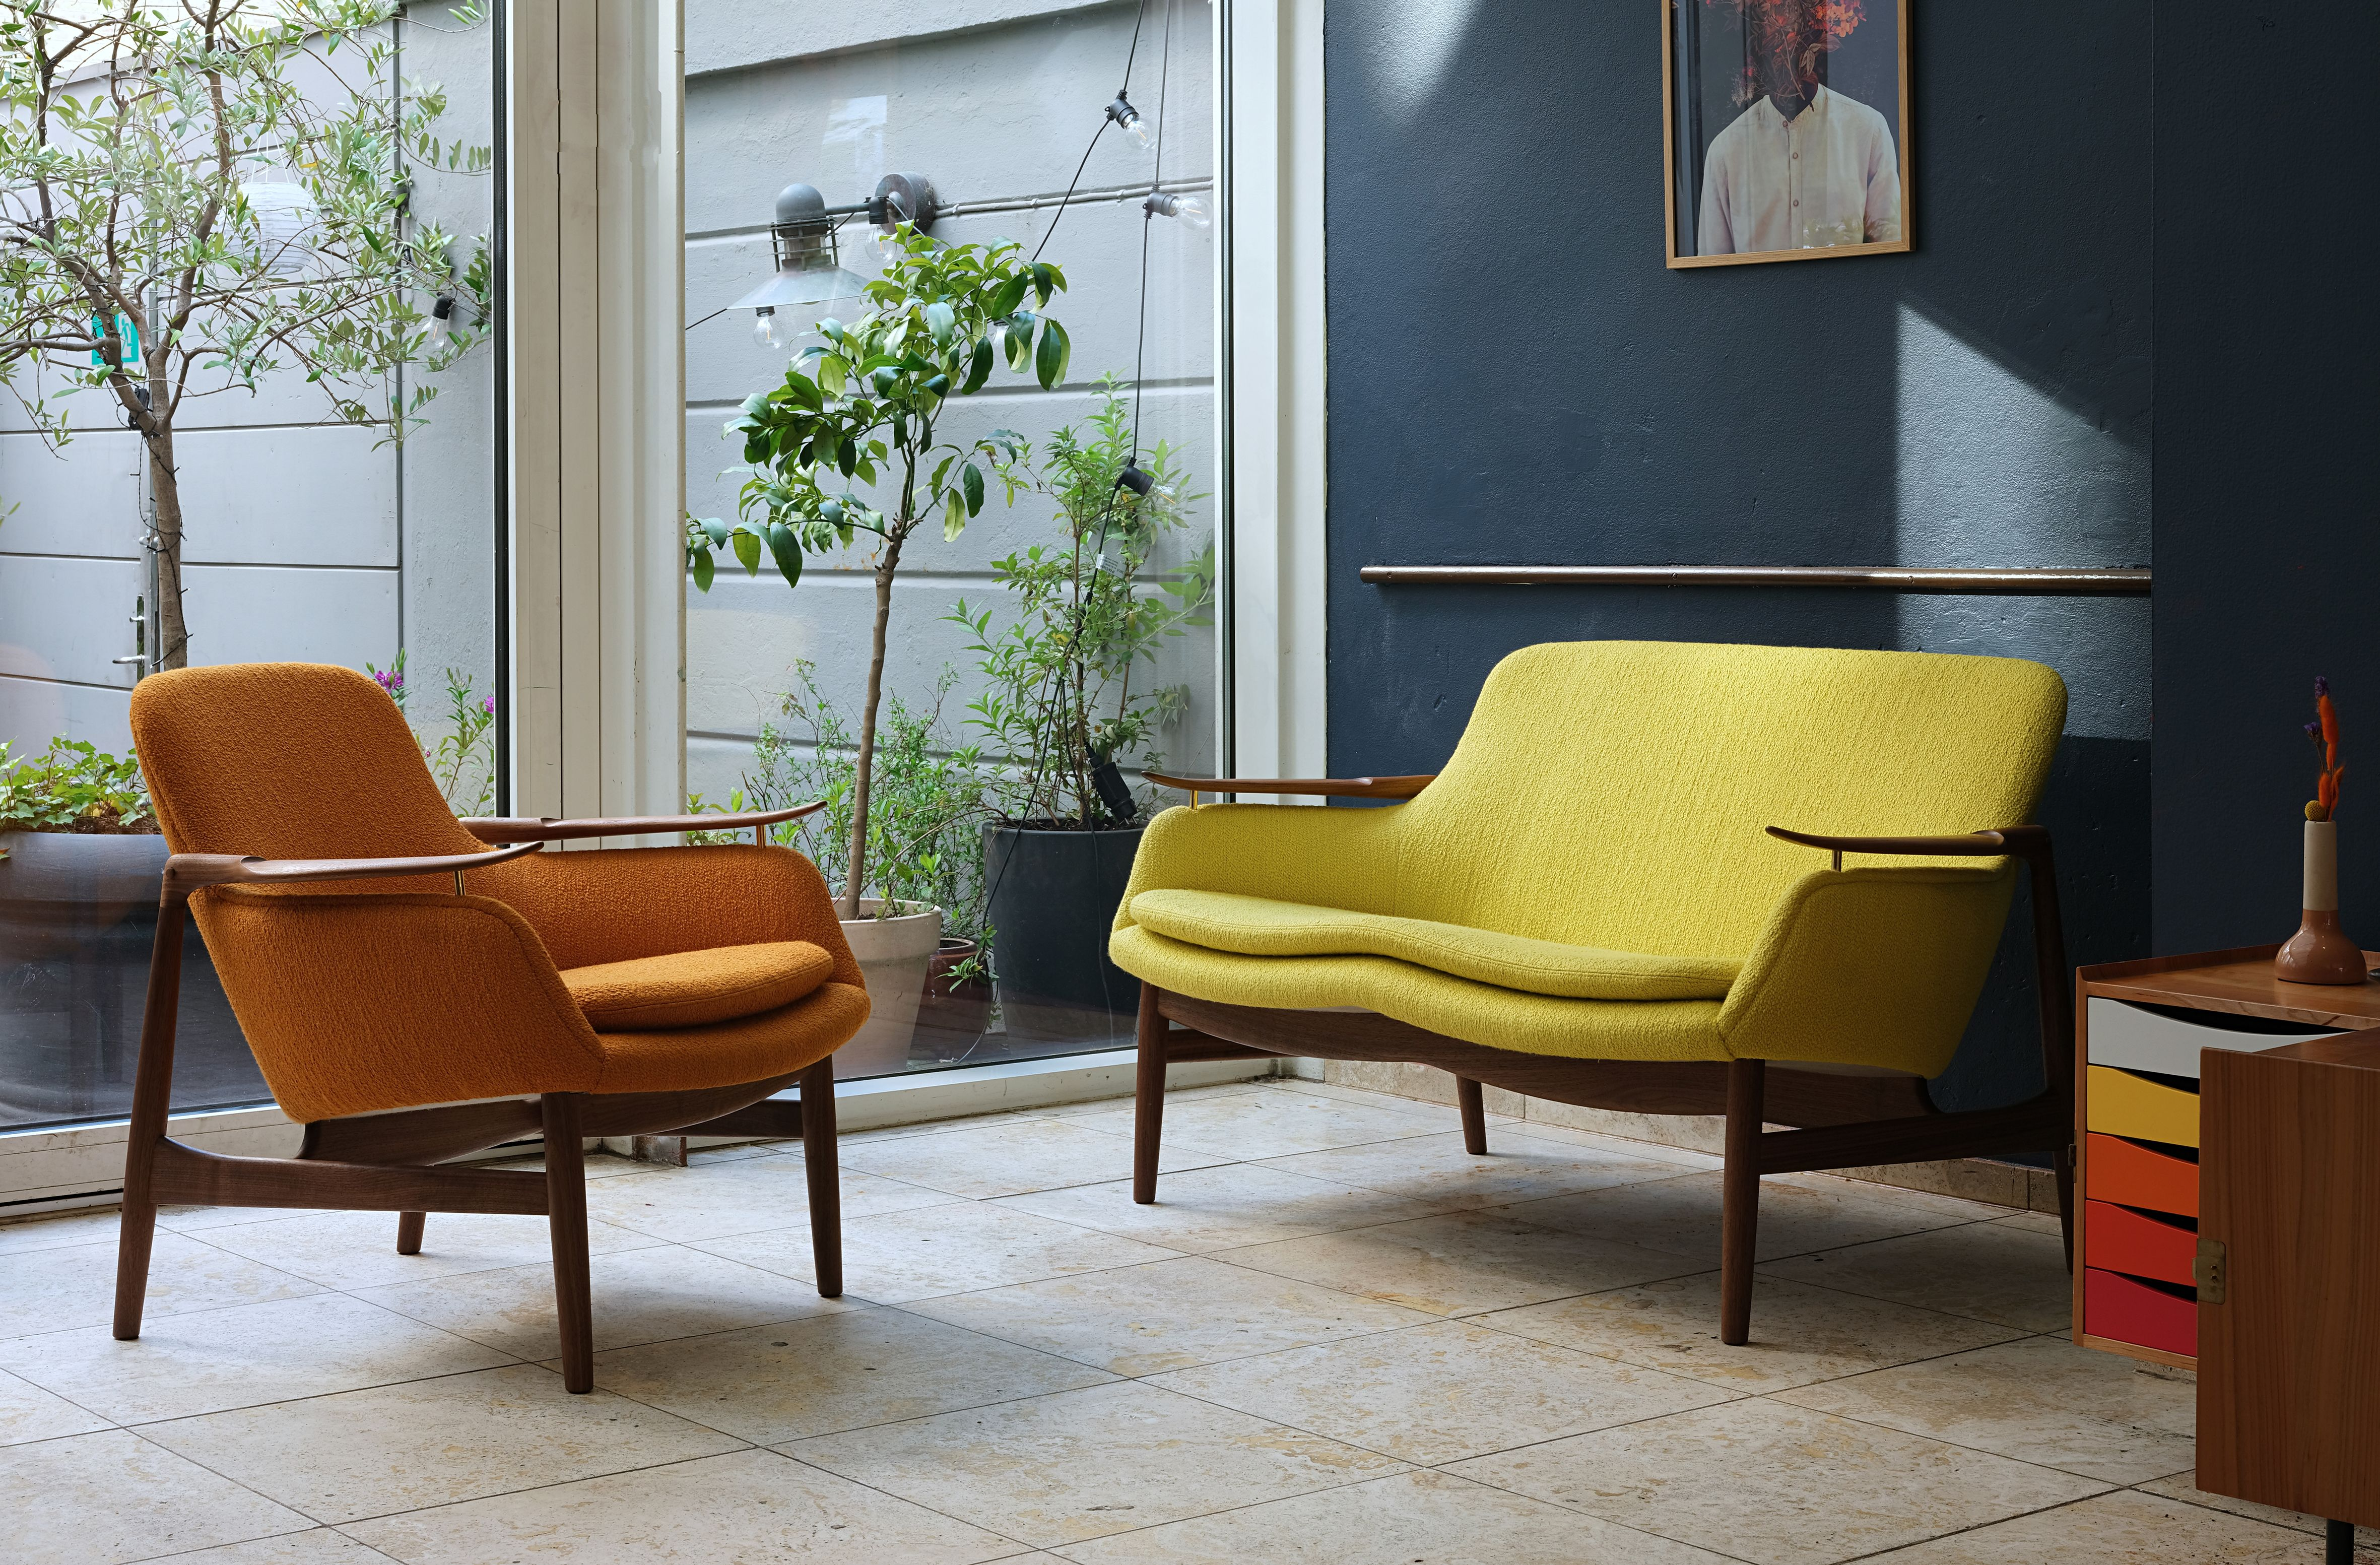 Modern Mid Century And Scandinavian Furniture Article In 2020 Furniture Scandinavian Furniture Mid Century Scandinavian Furniture